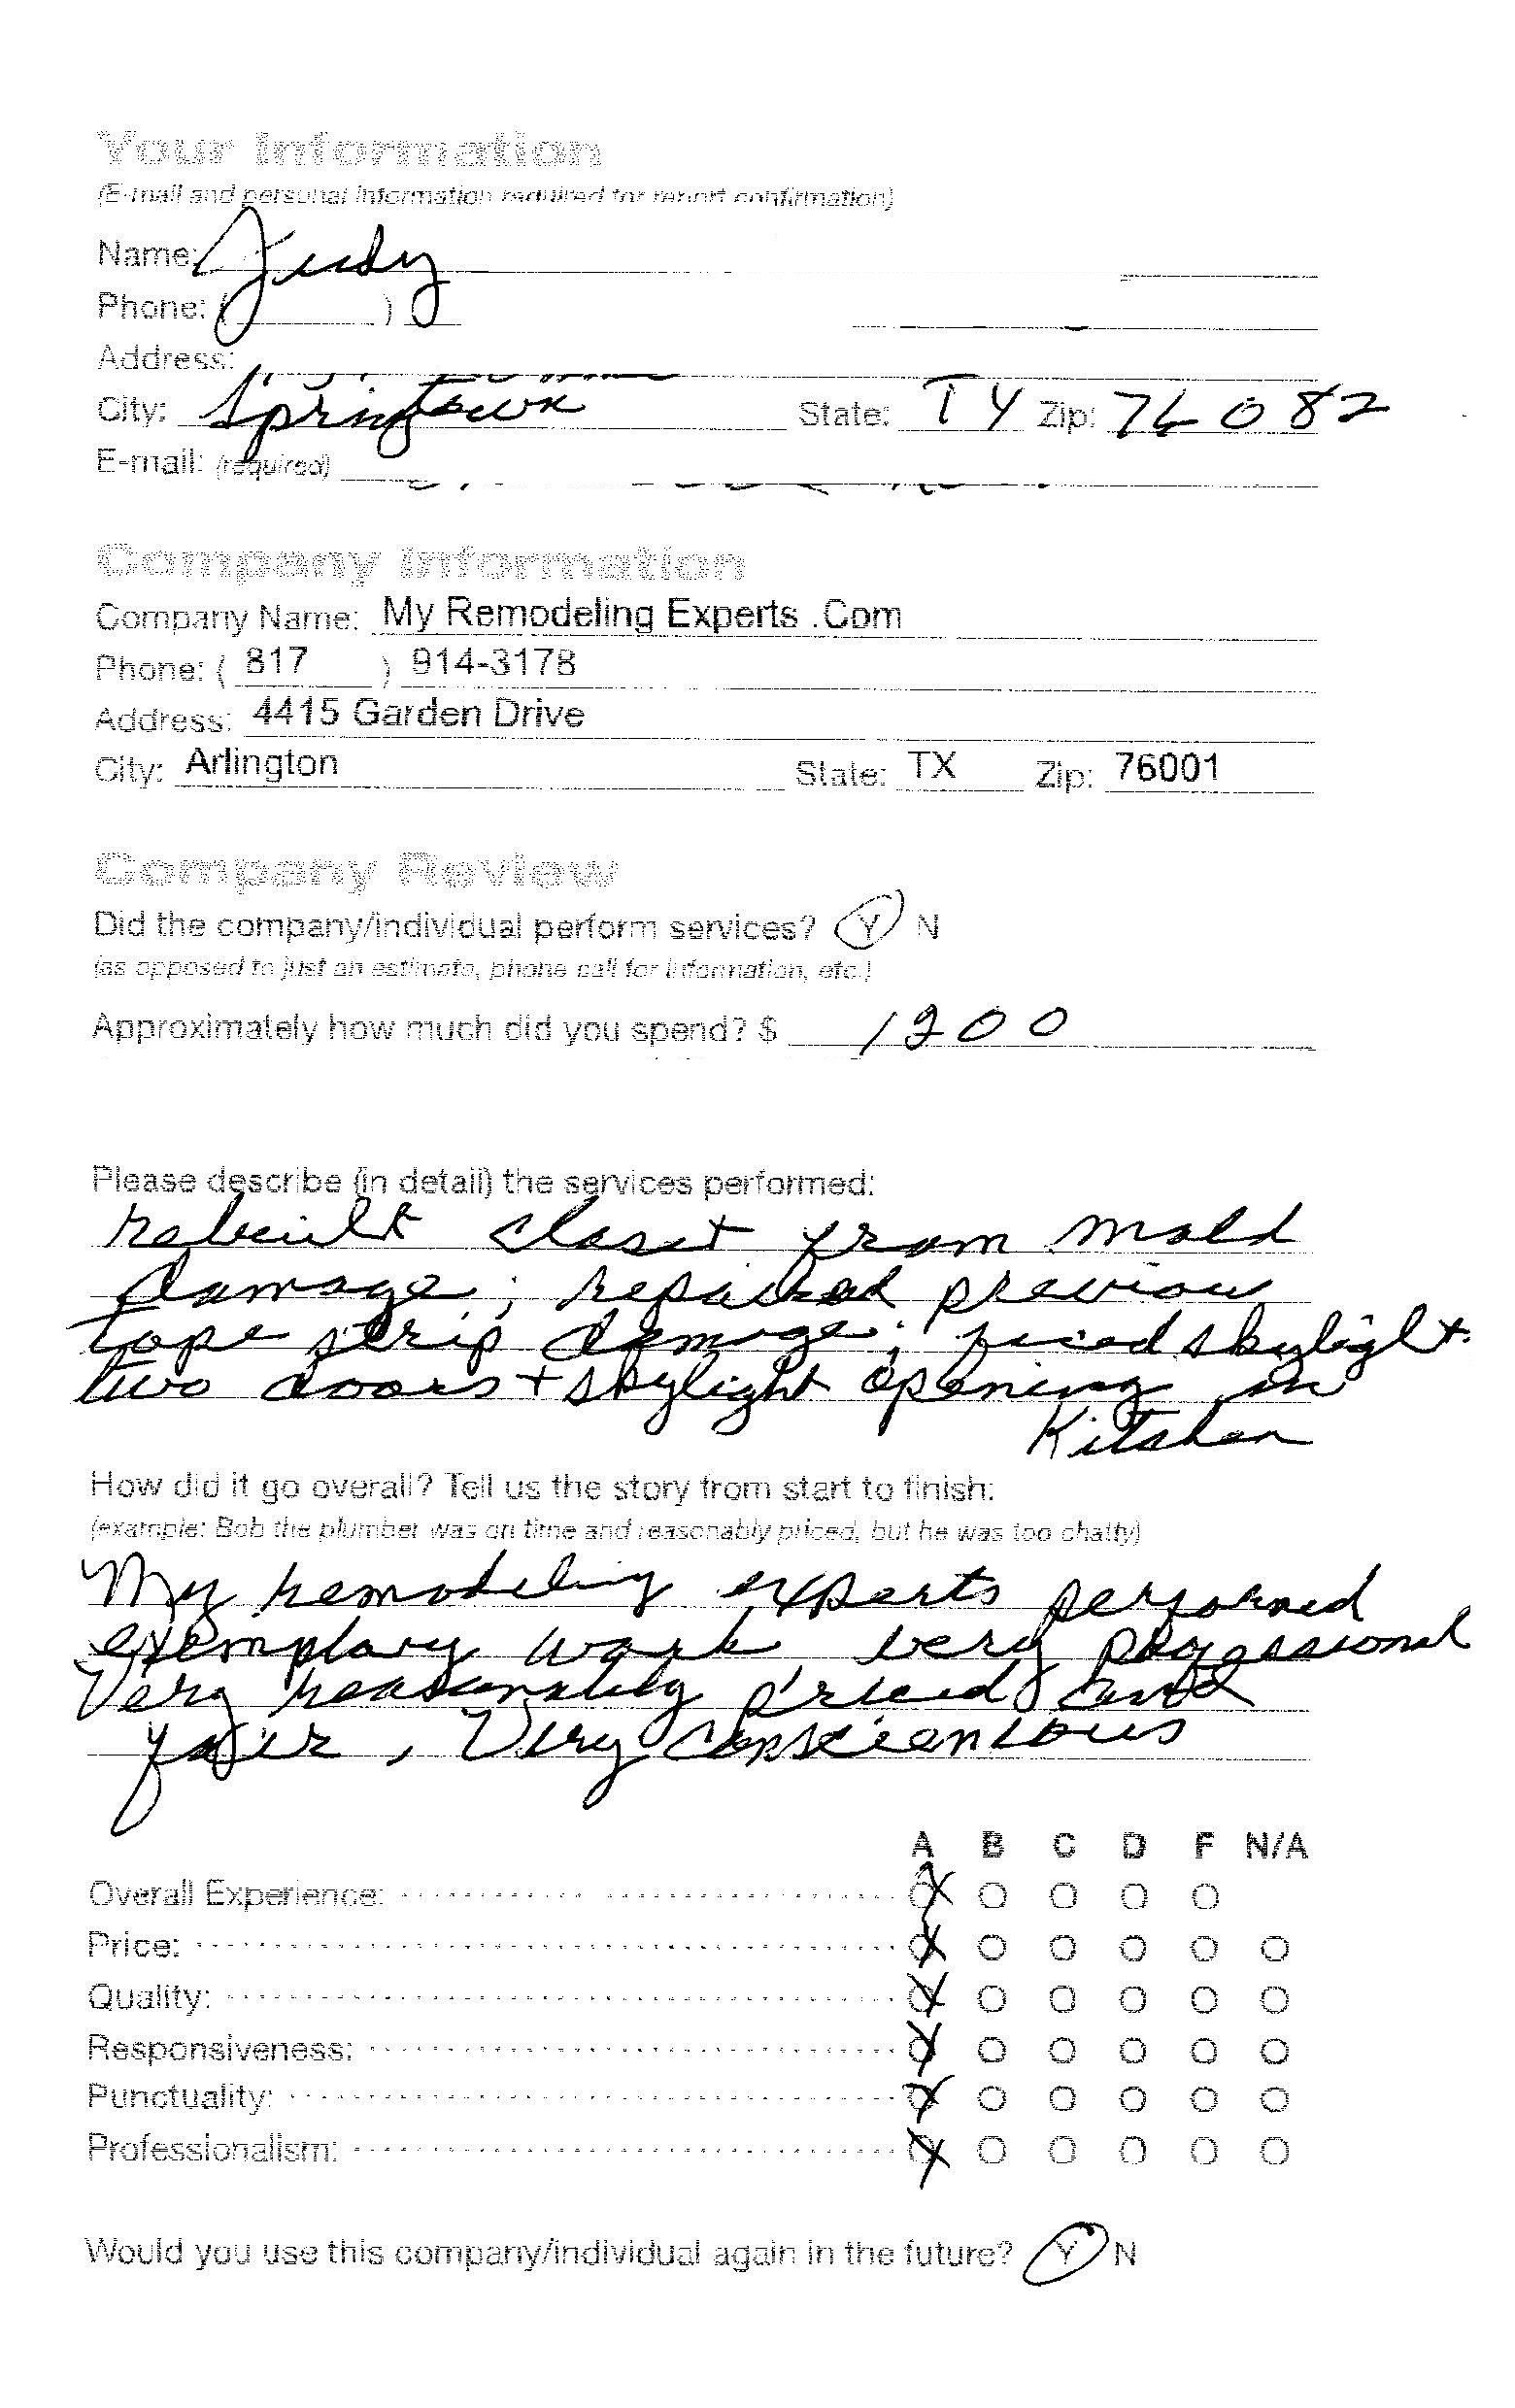 Testimony 5 My Remodeling Experts